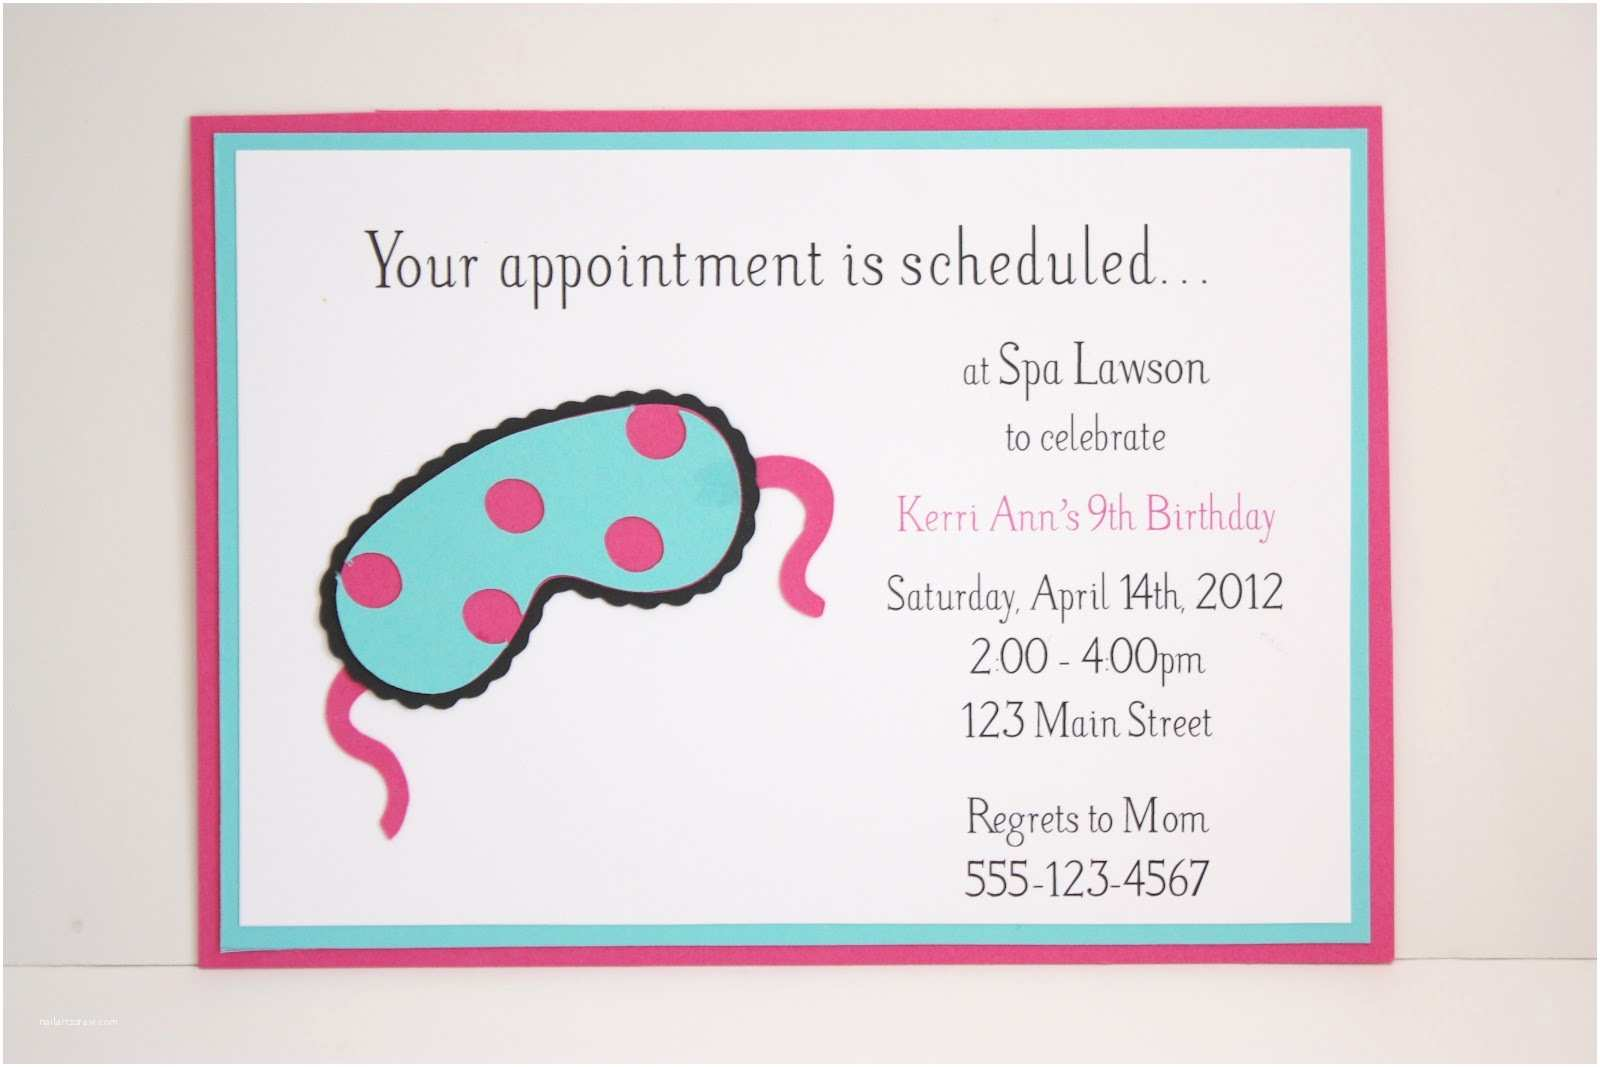 Spa Party Invitations Free Girl Spa Party Invitations